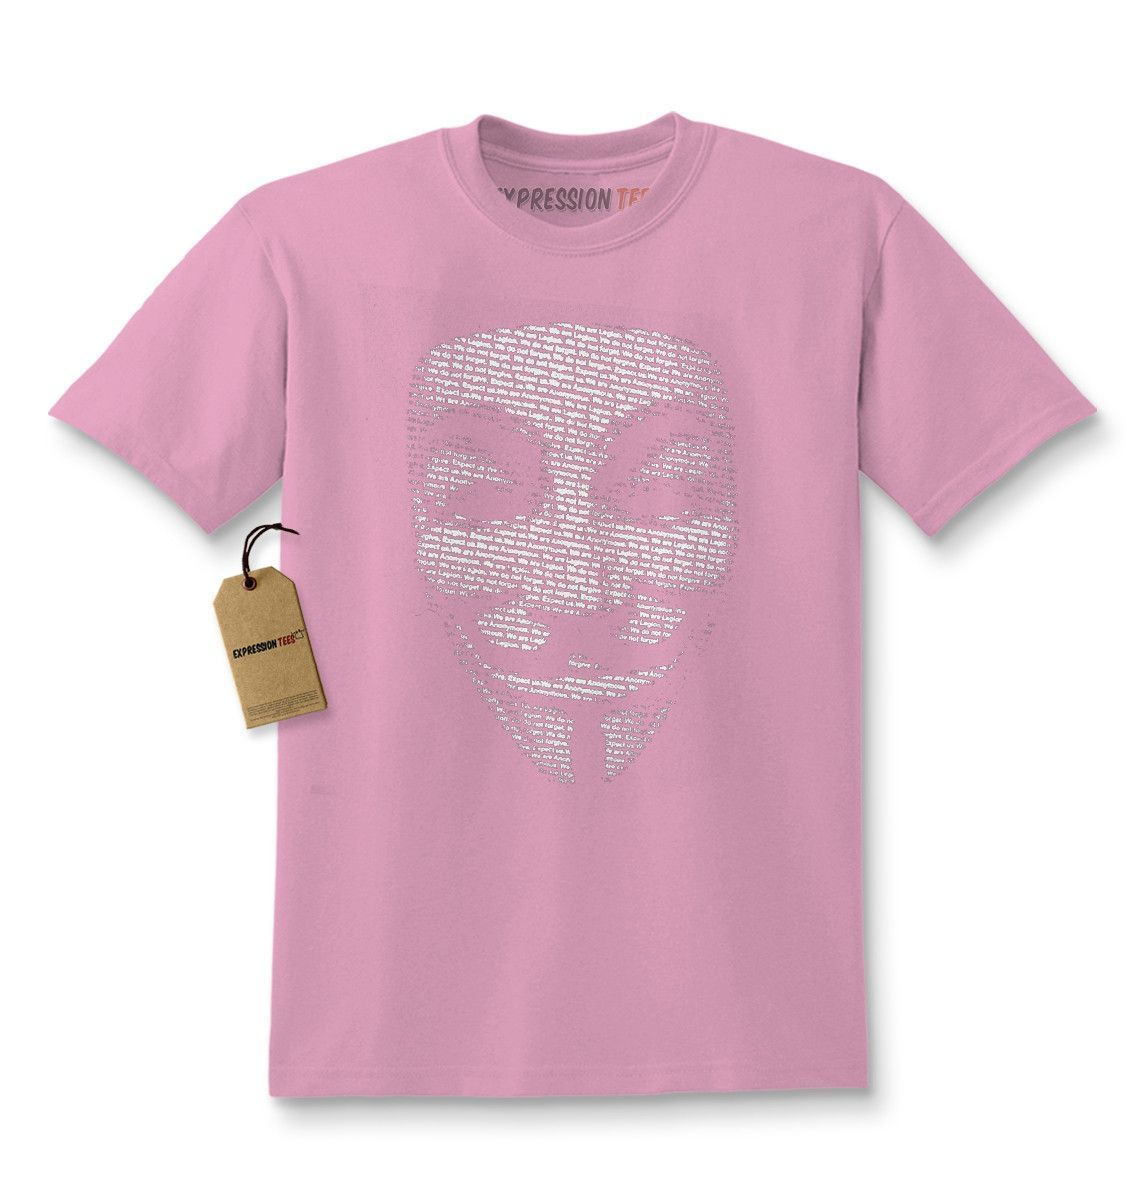 V for Vendetta / Guy Fawkes Mask Kids T-shirt | Shirts, Products ...